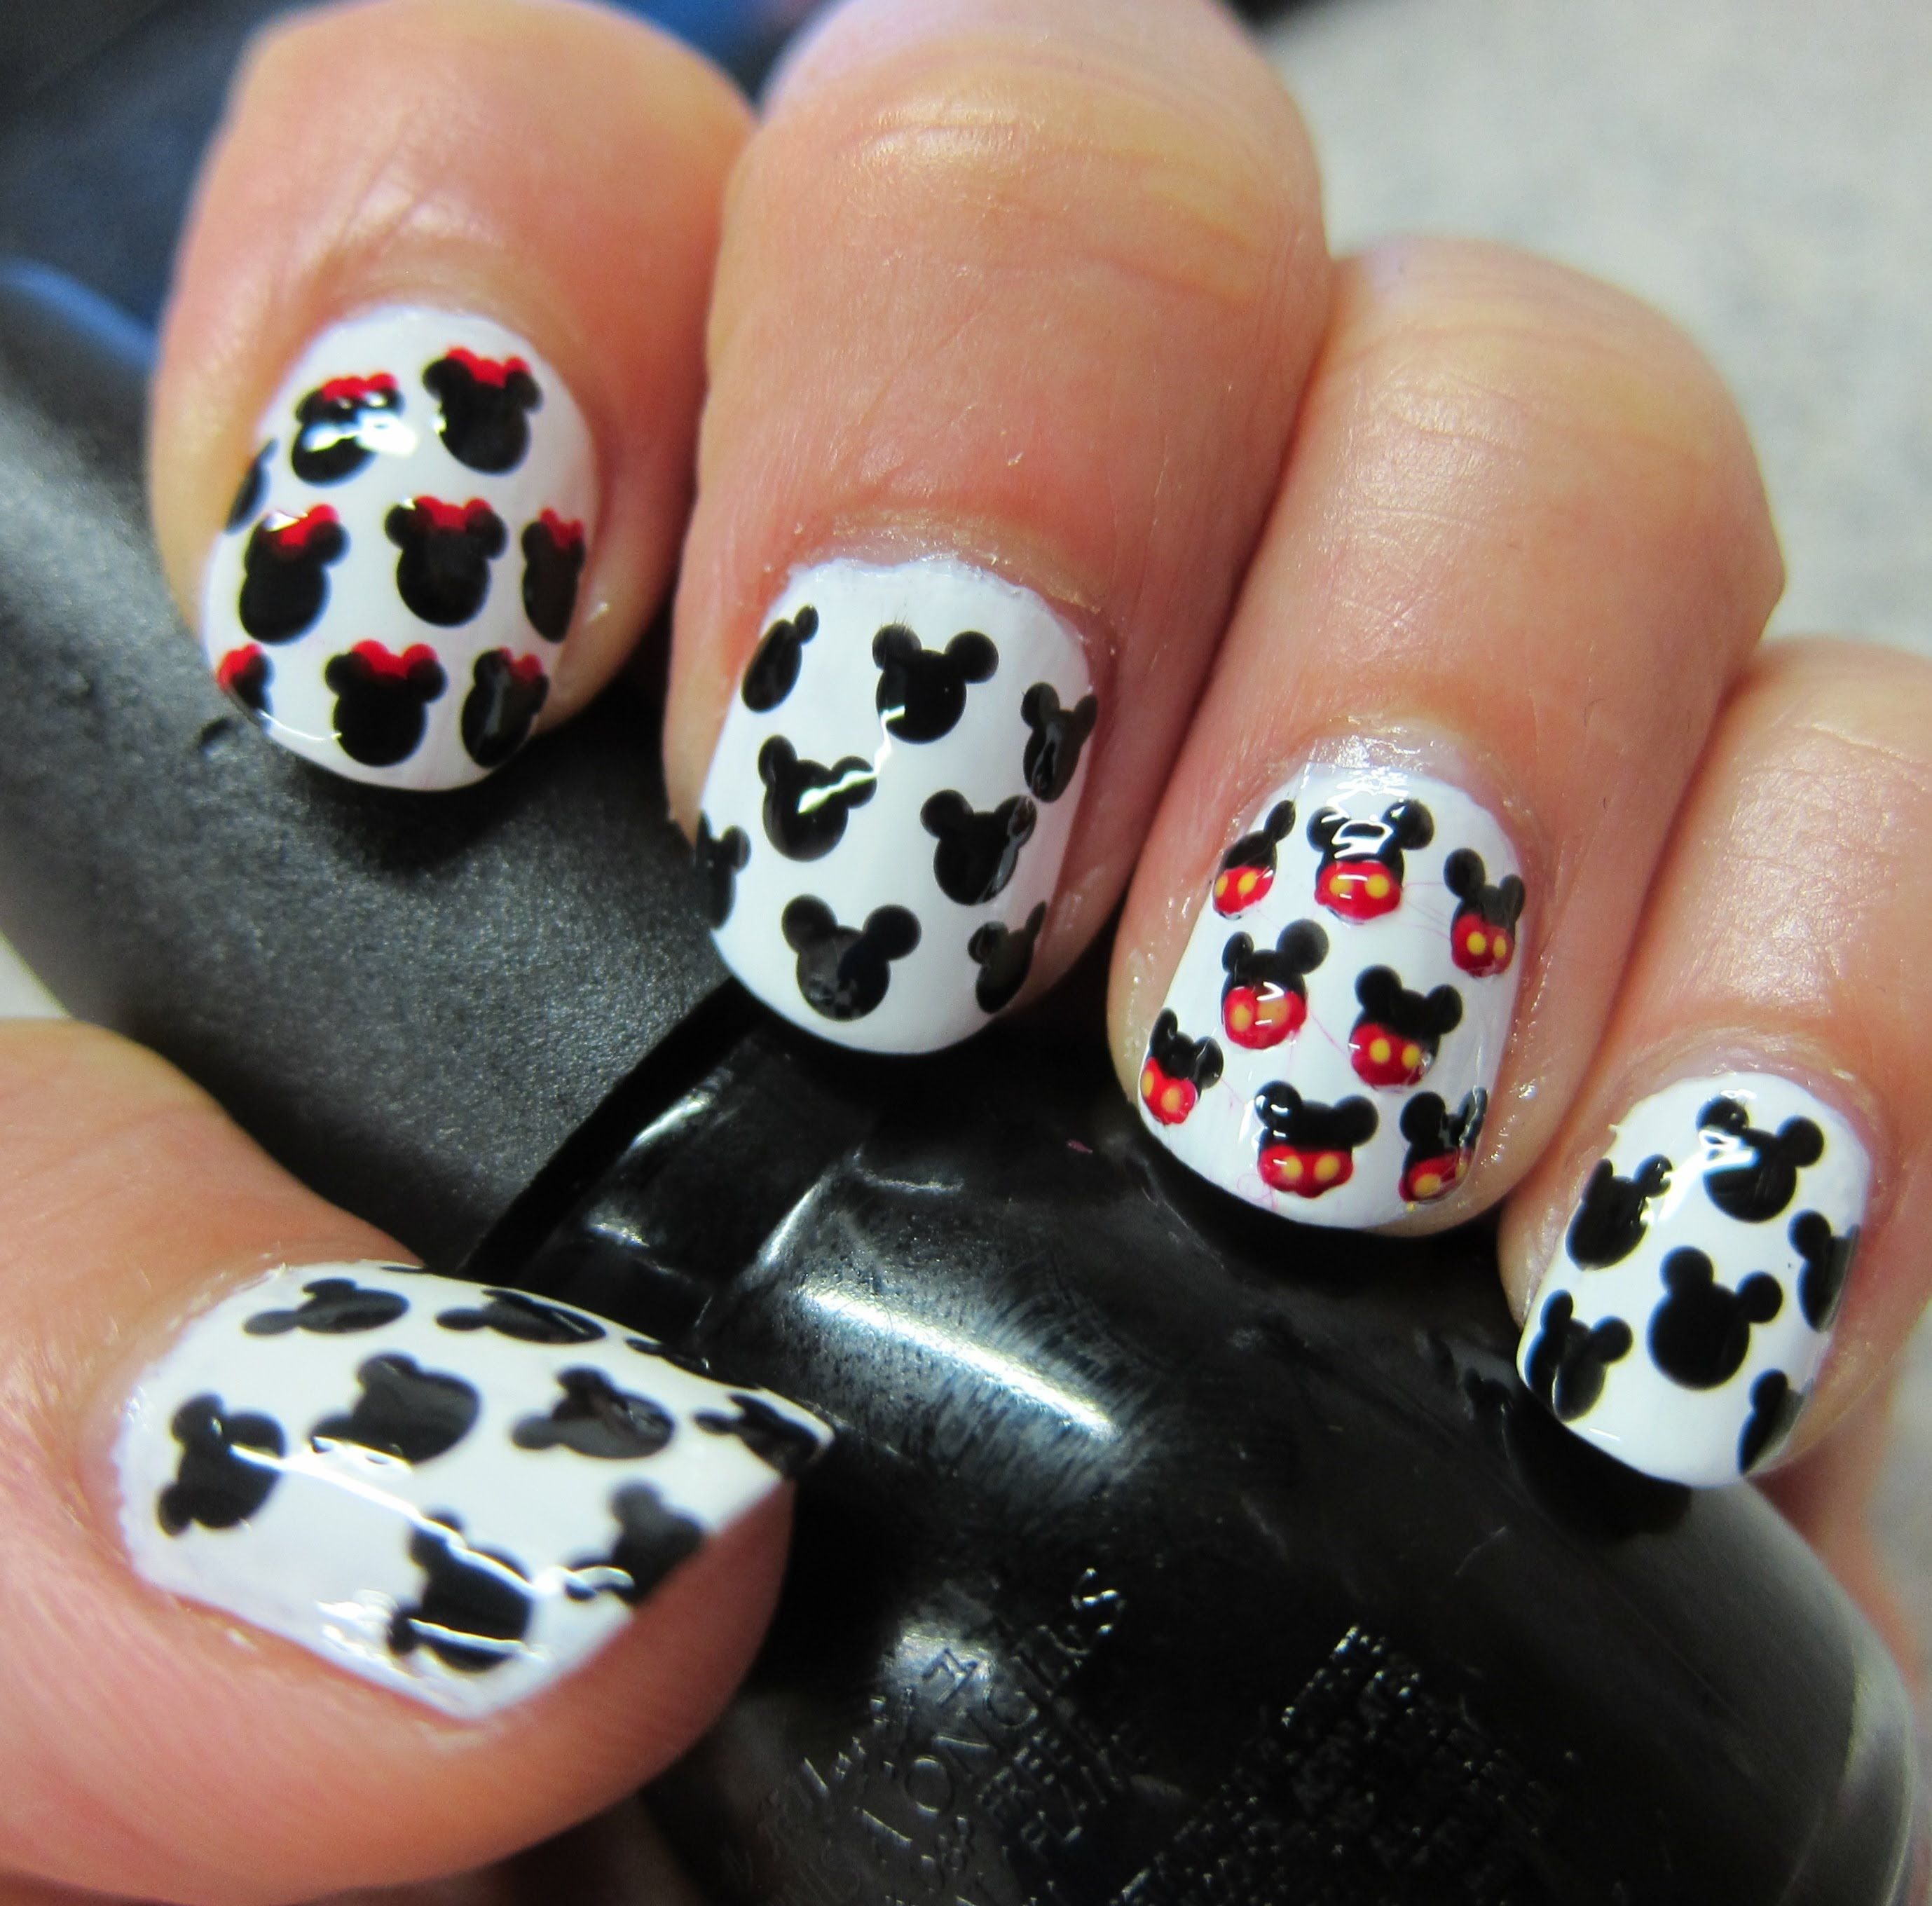 Diseño de uñas #30 ╫ Mickey and Minnie mouse ╫ | Uñas | Pinterest ...